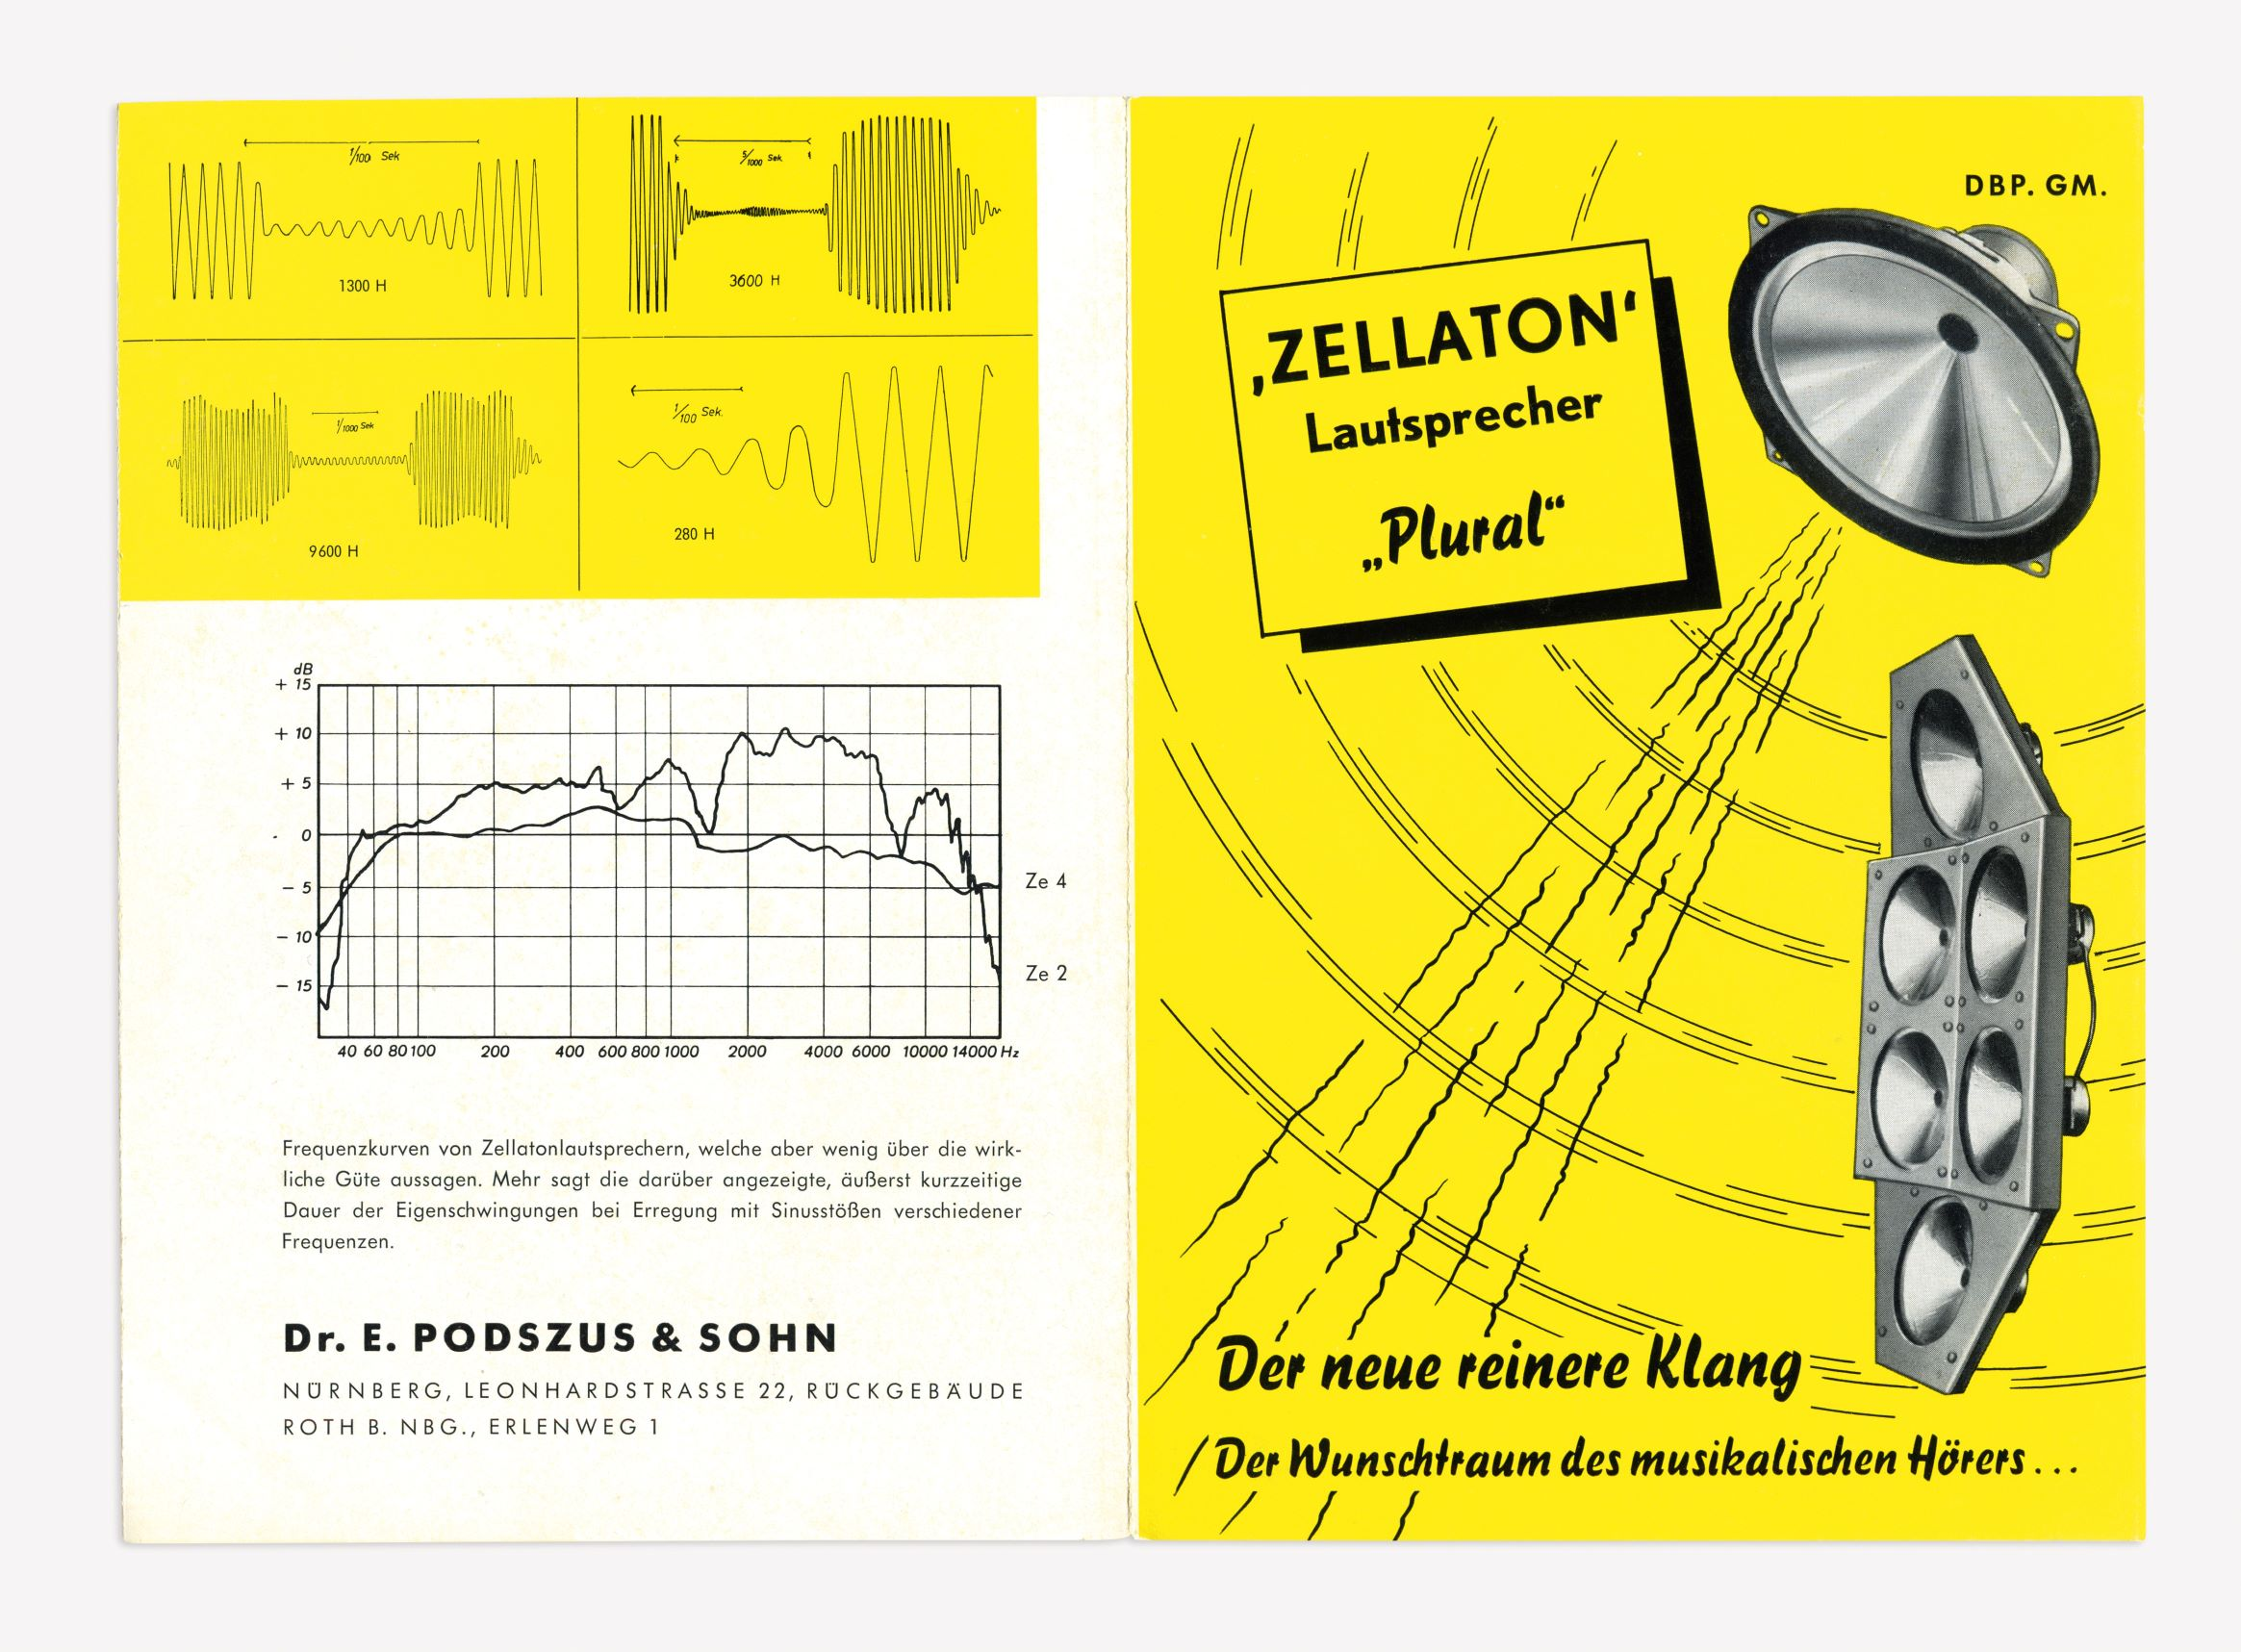 Promotional brochure for the Plural Loudspeakers, Zellaton, late 1950s